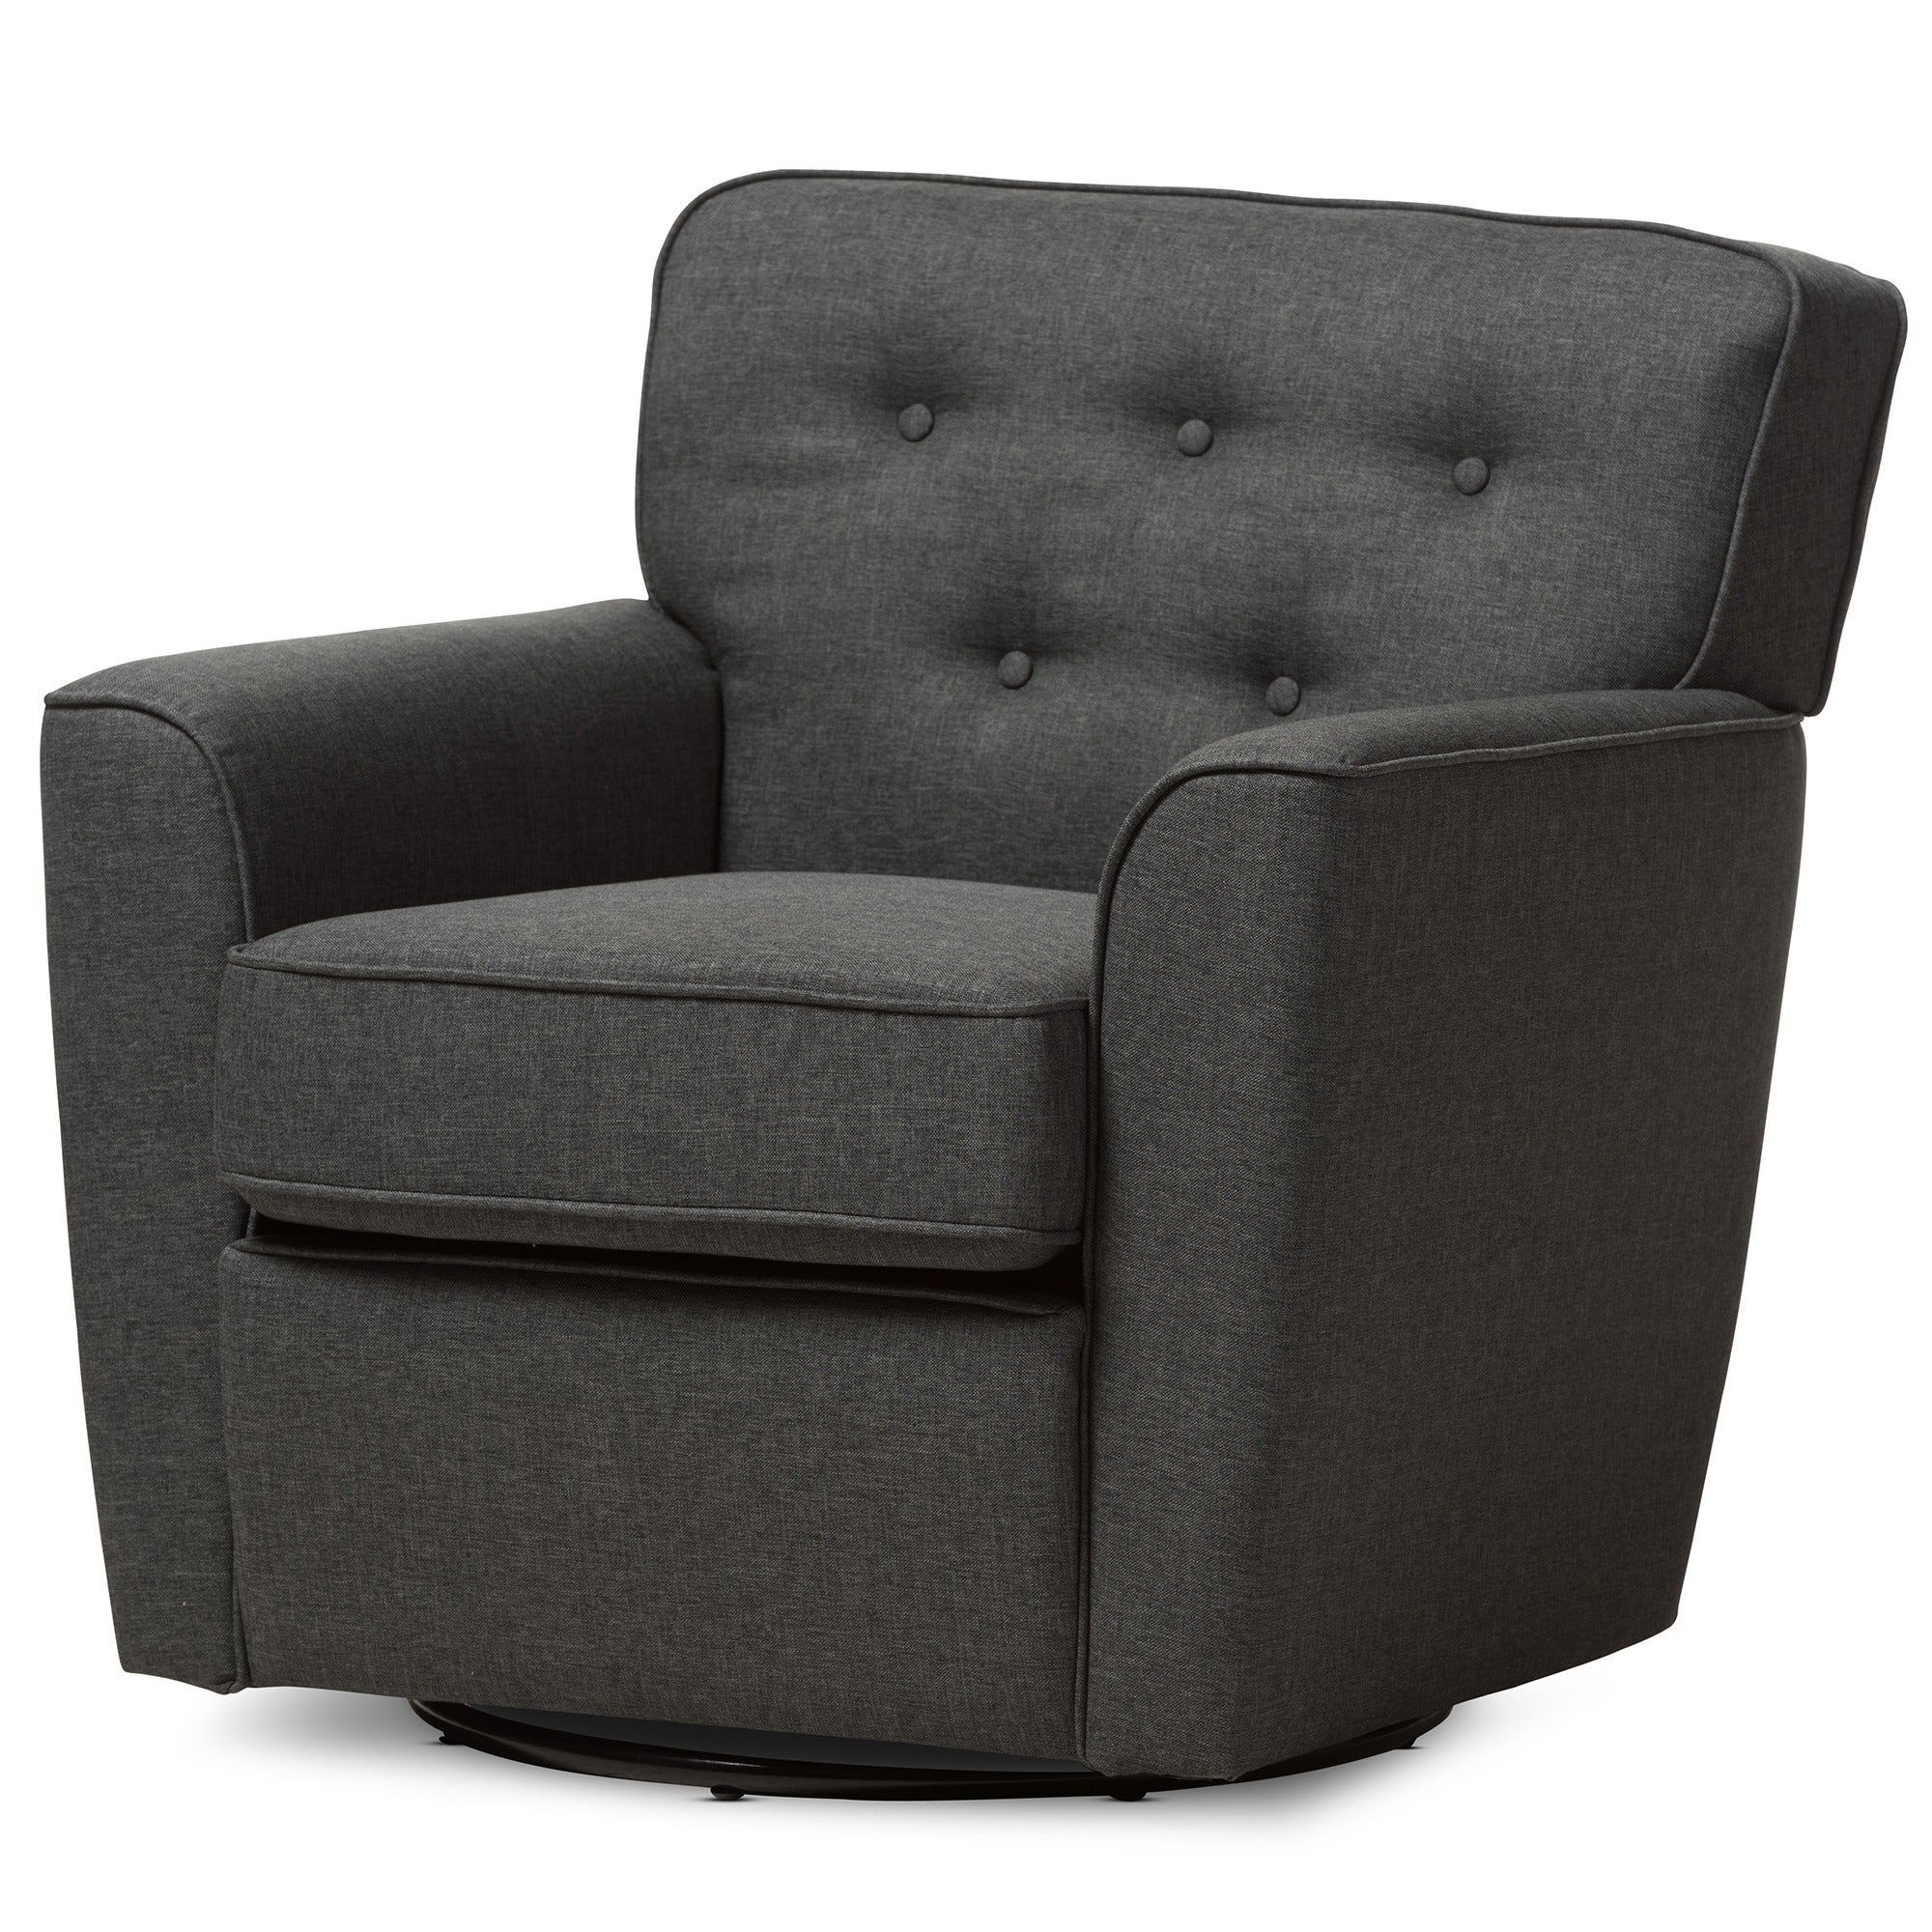 Merveilleux Shop Baxton Studio Canberra Contemporary Grey Tufted Swivel Armchair   Free  Shipping Today   Overstock.com   10305558